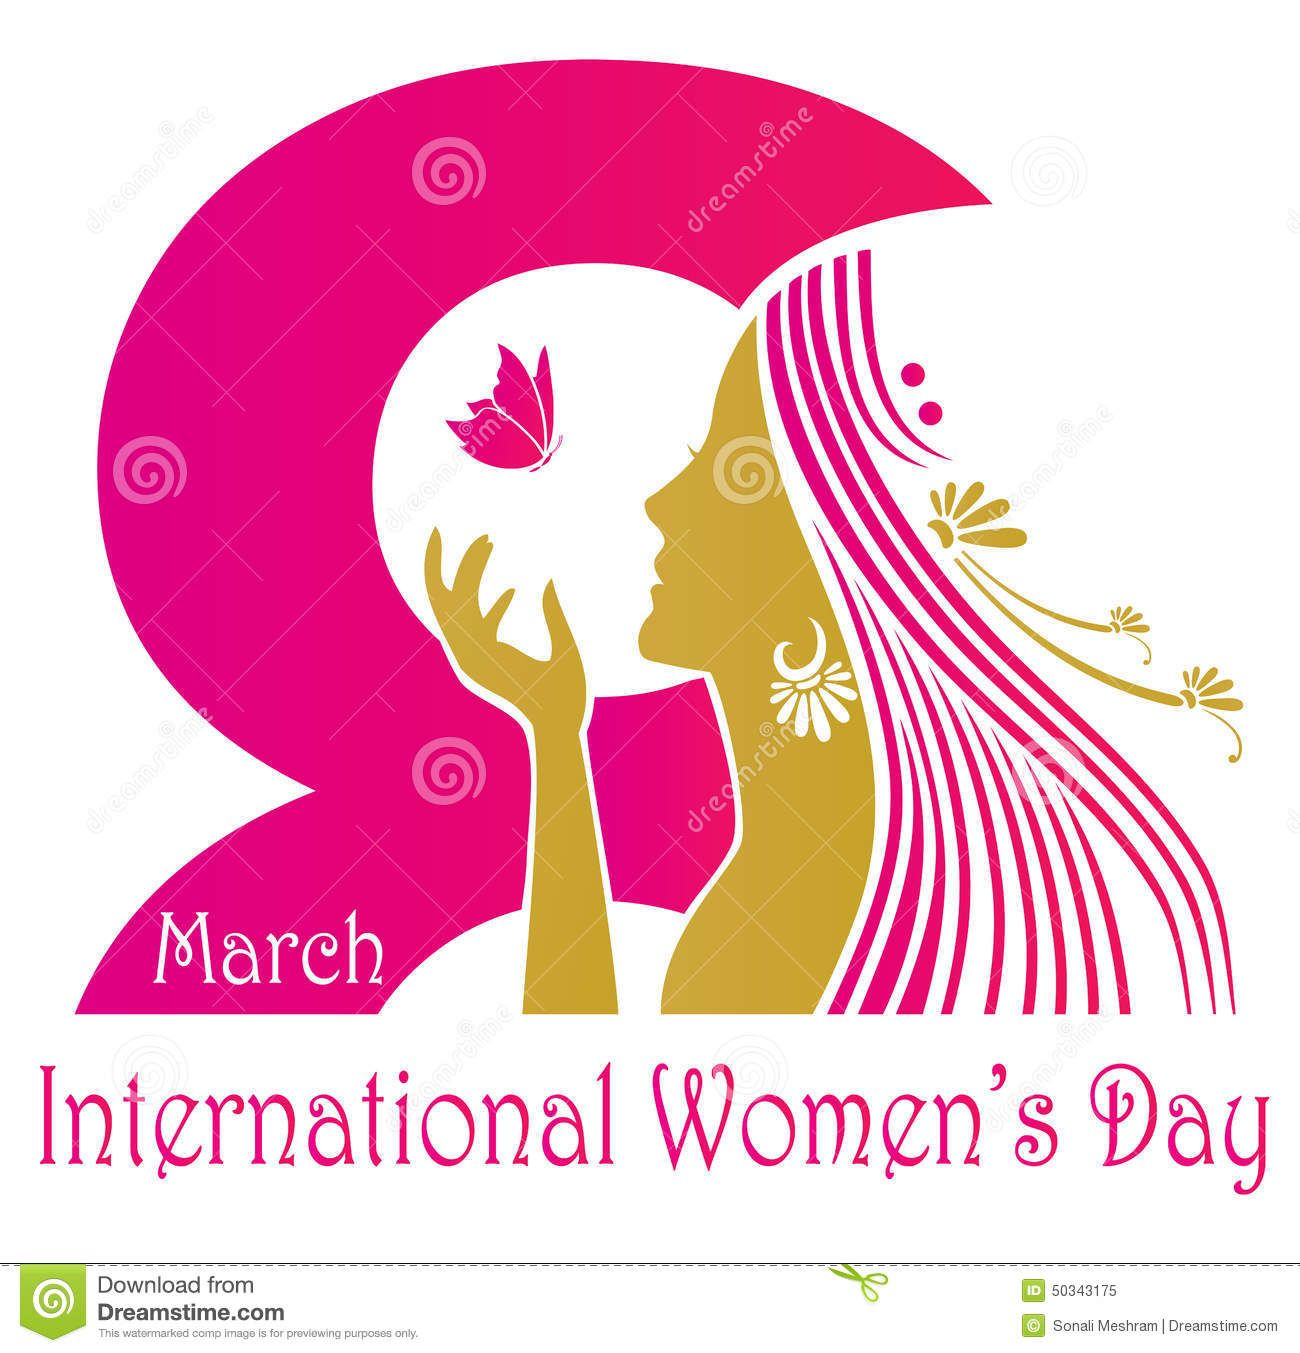 International Womens Day Design Download From Over 56 Million High Quality Stock Photos Images Vect International Womens Day Ladies Day Vector Illustration